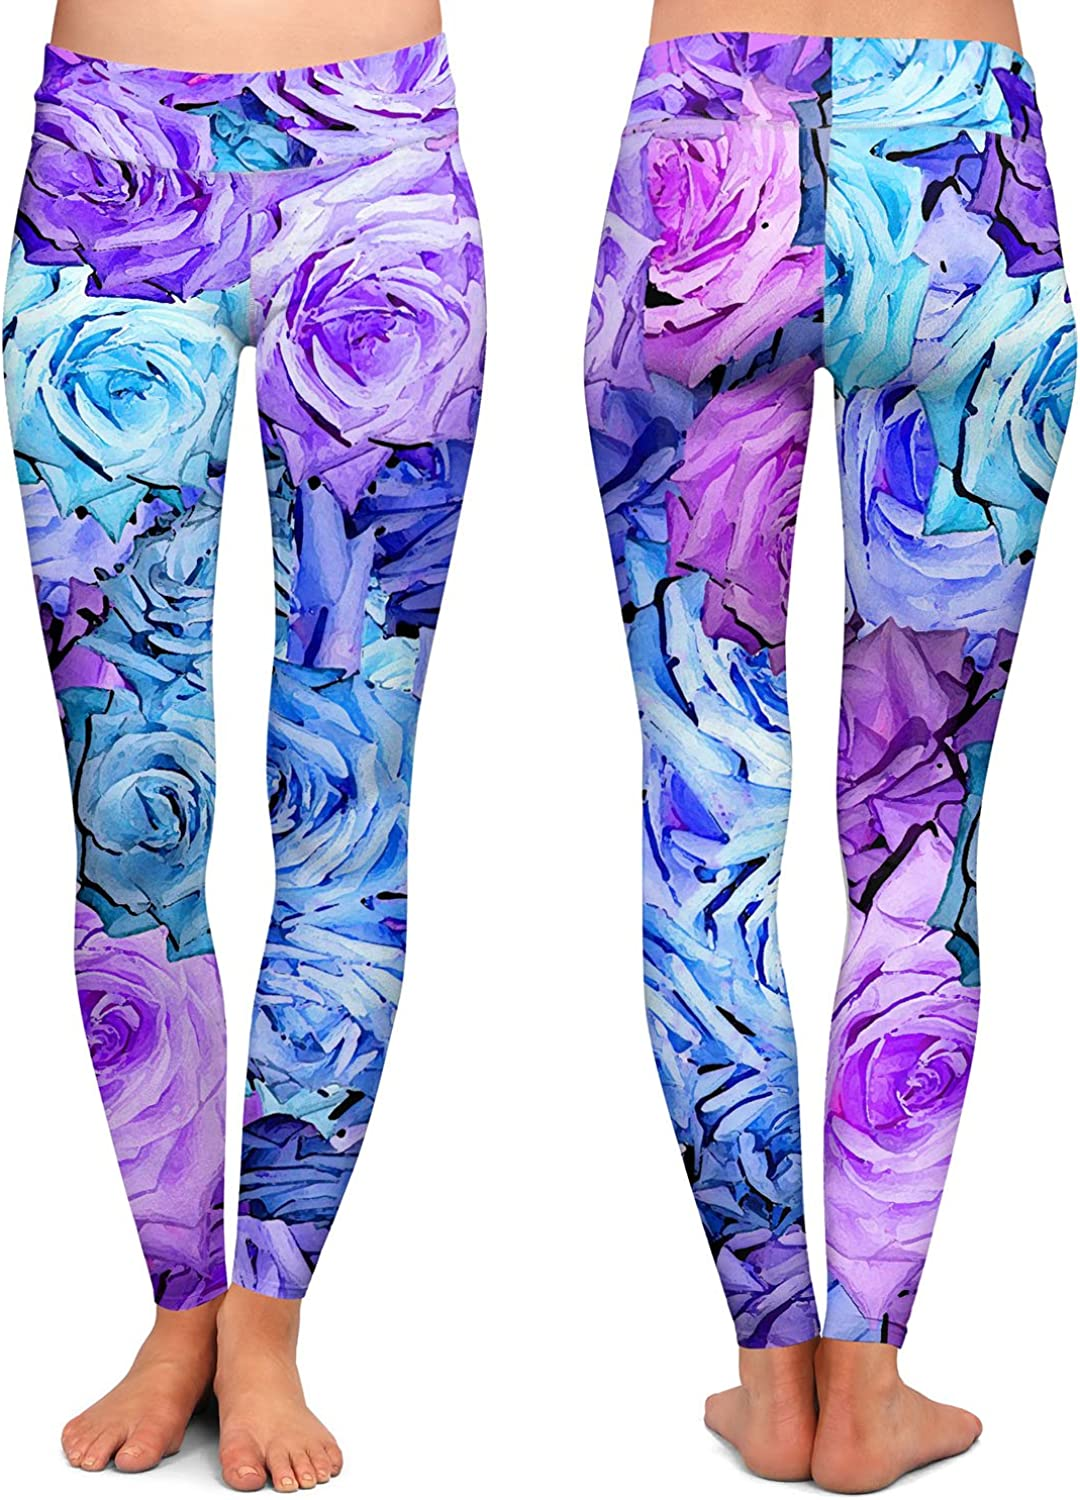 Athletic Yoga Leggings from DiaNoche Designs by Susie Kunzelman Roses Lavender Blue